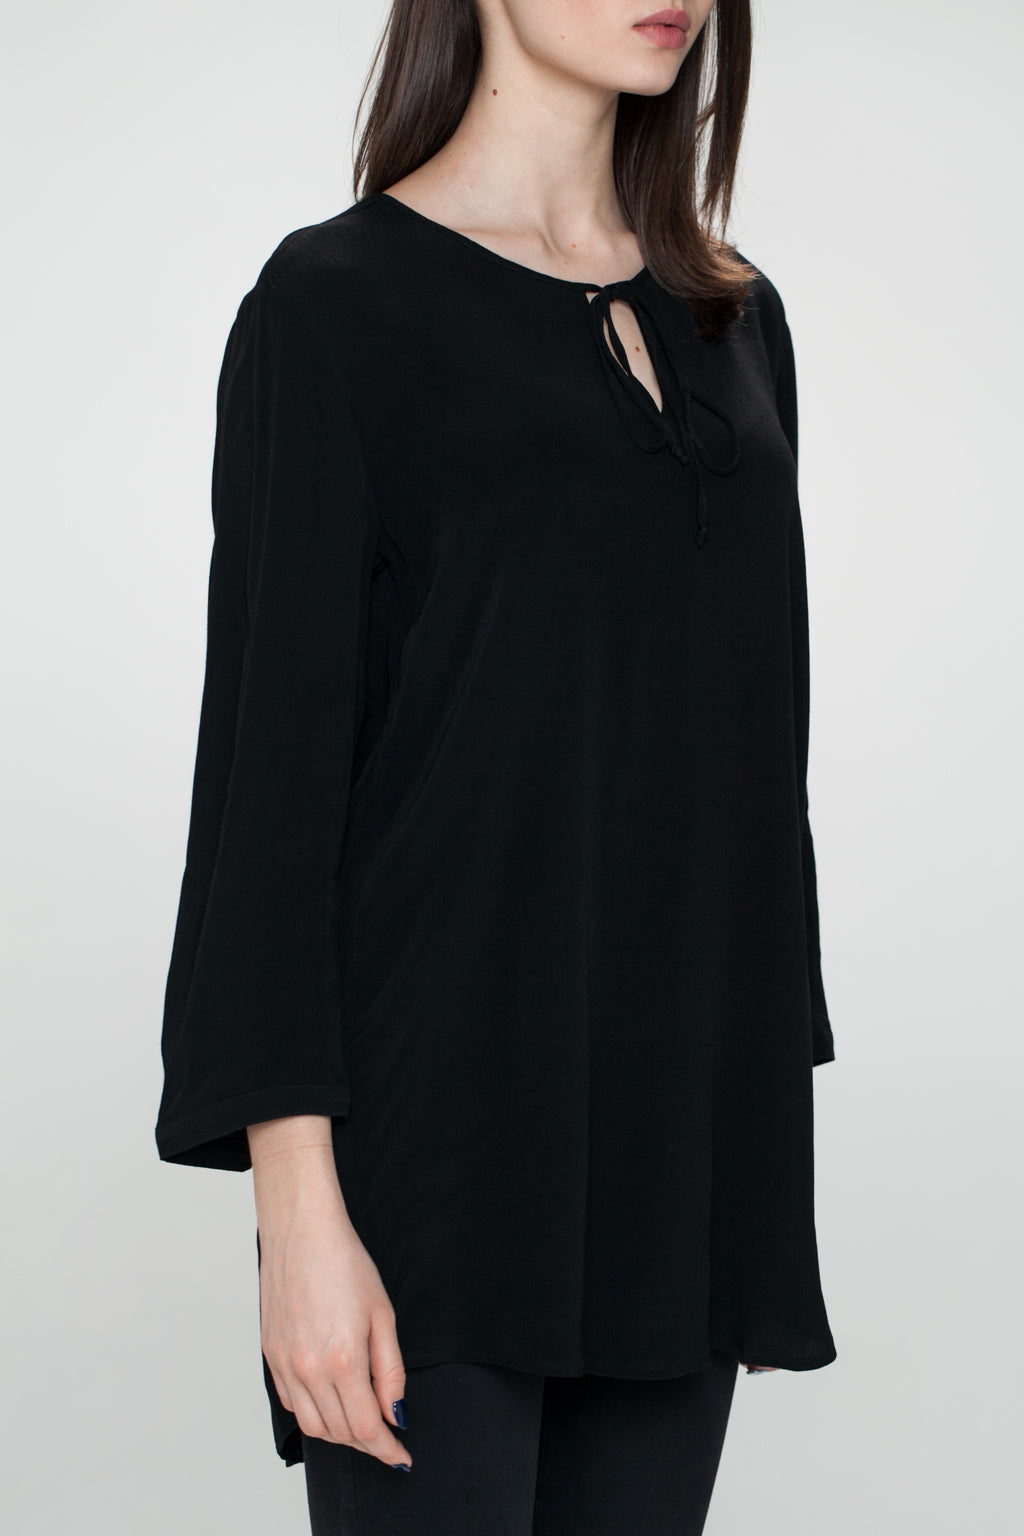 JÖRÐ TIED CLOSURE IN FRONT NECKLINE